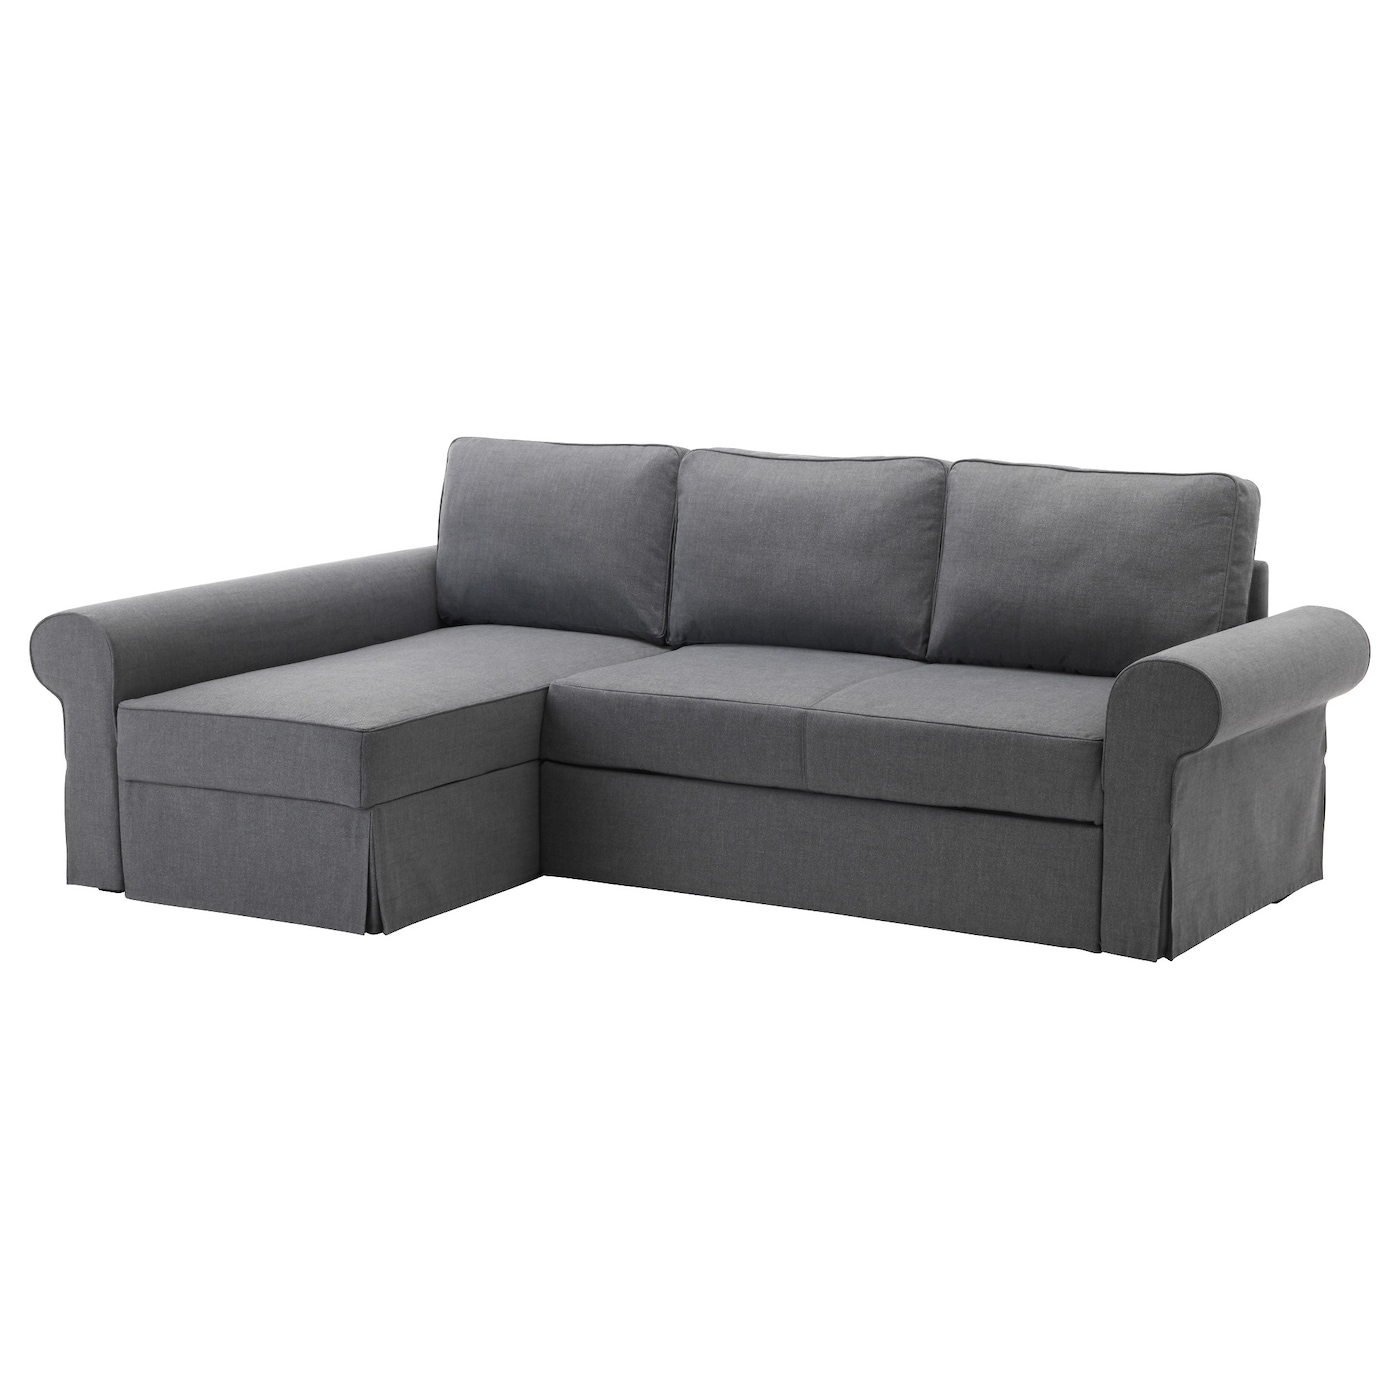 Backabro Sofa Bed With Chaise Longue Nordvalla Dark Grey